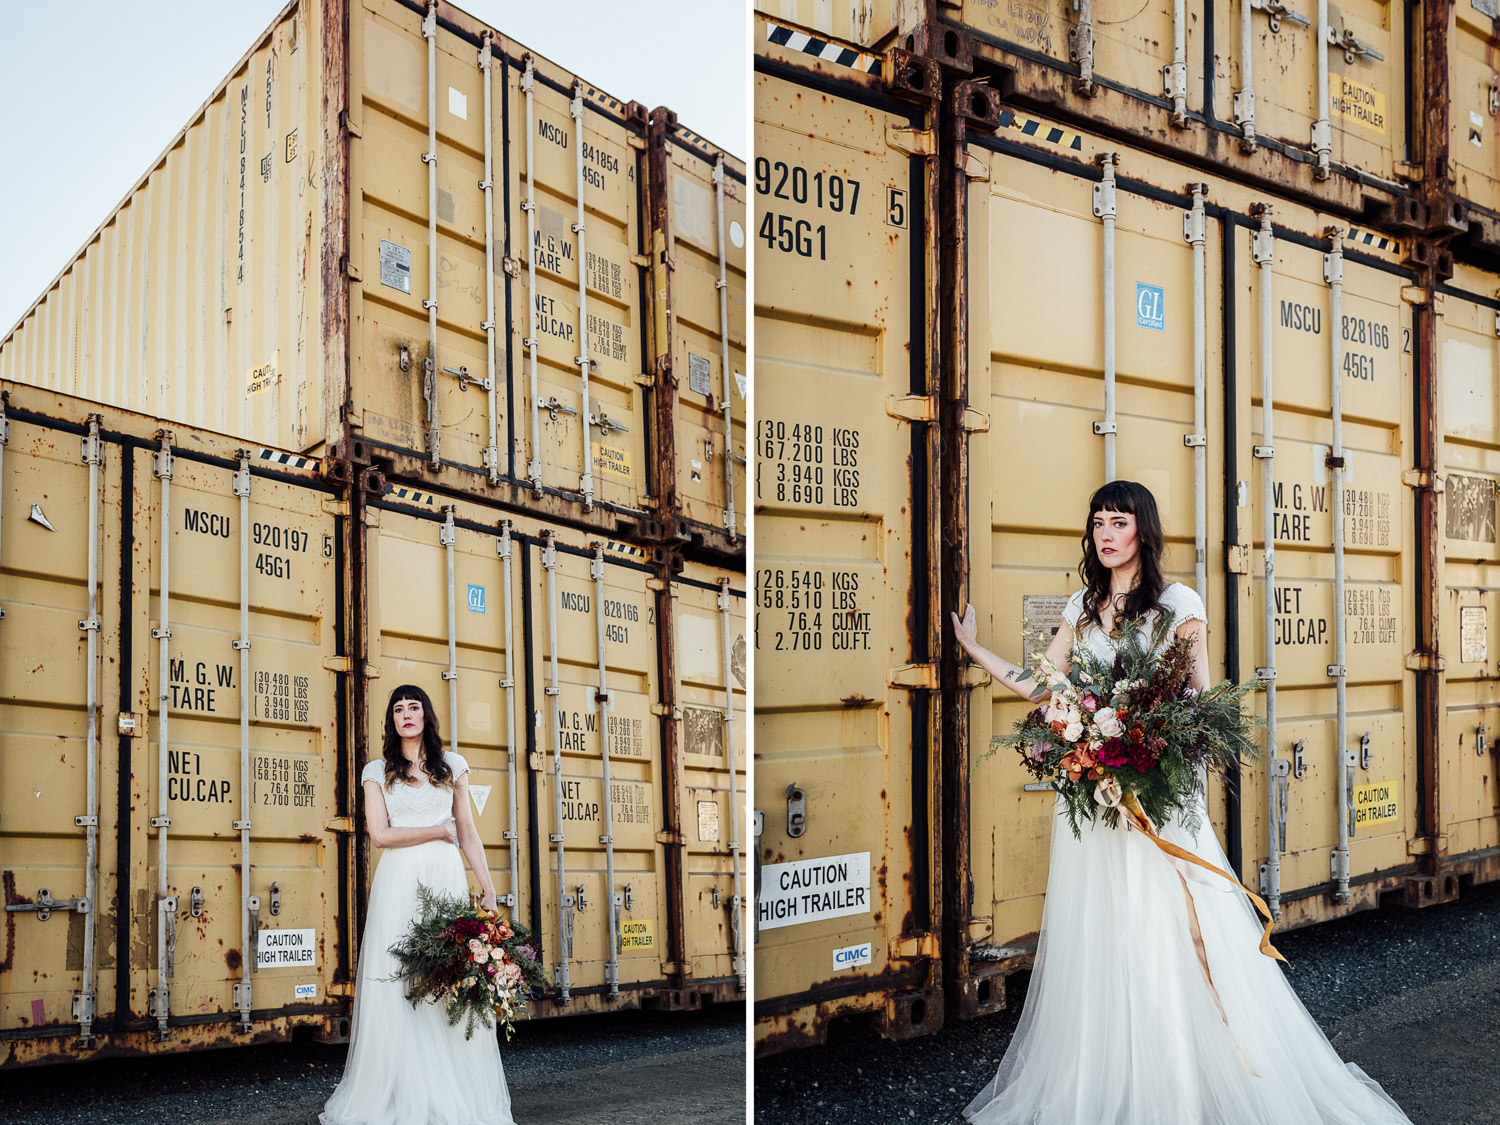 bride-with-shipping-containers.jpg